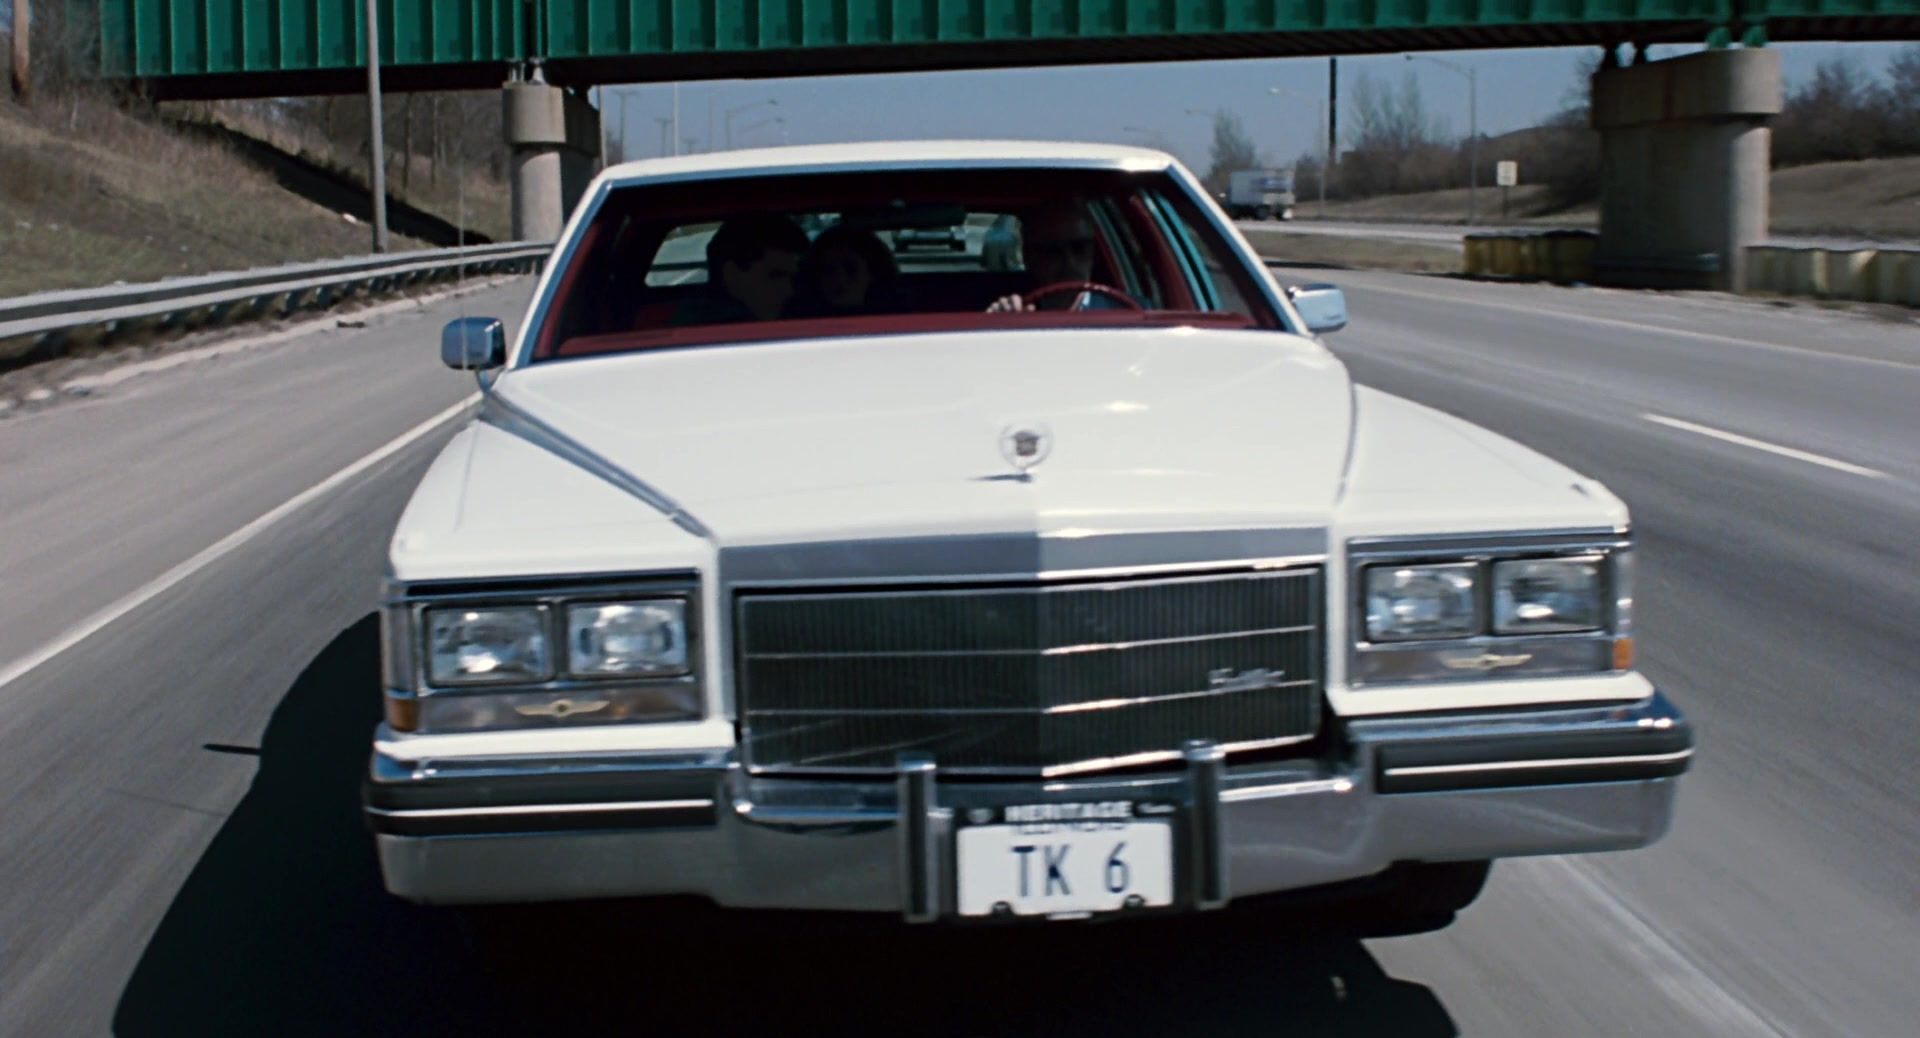 Cadillac Fleetwood Brougham White Car Used by Paul Newman in The Color of Money (1986) Movie